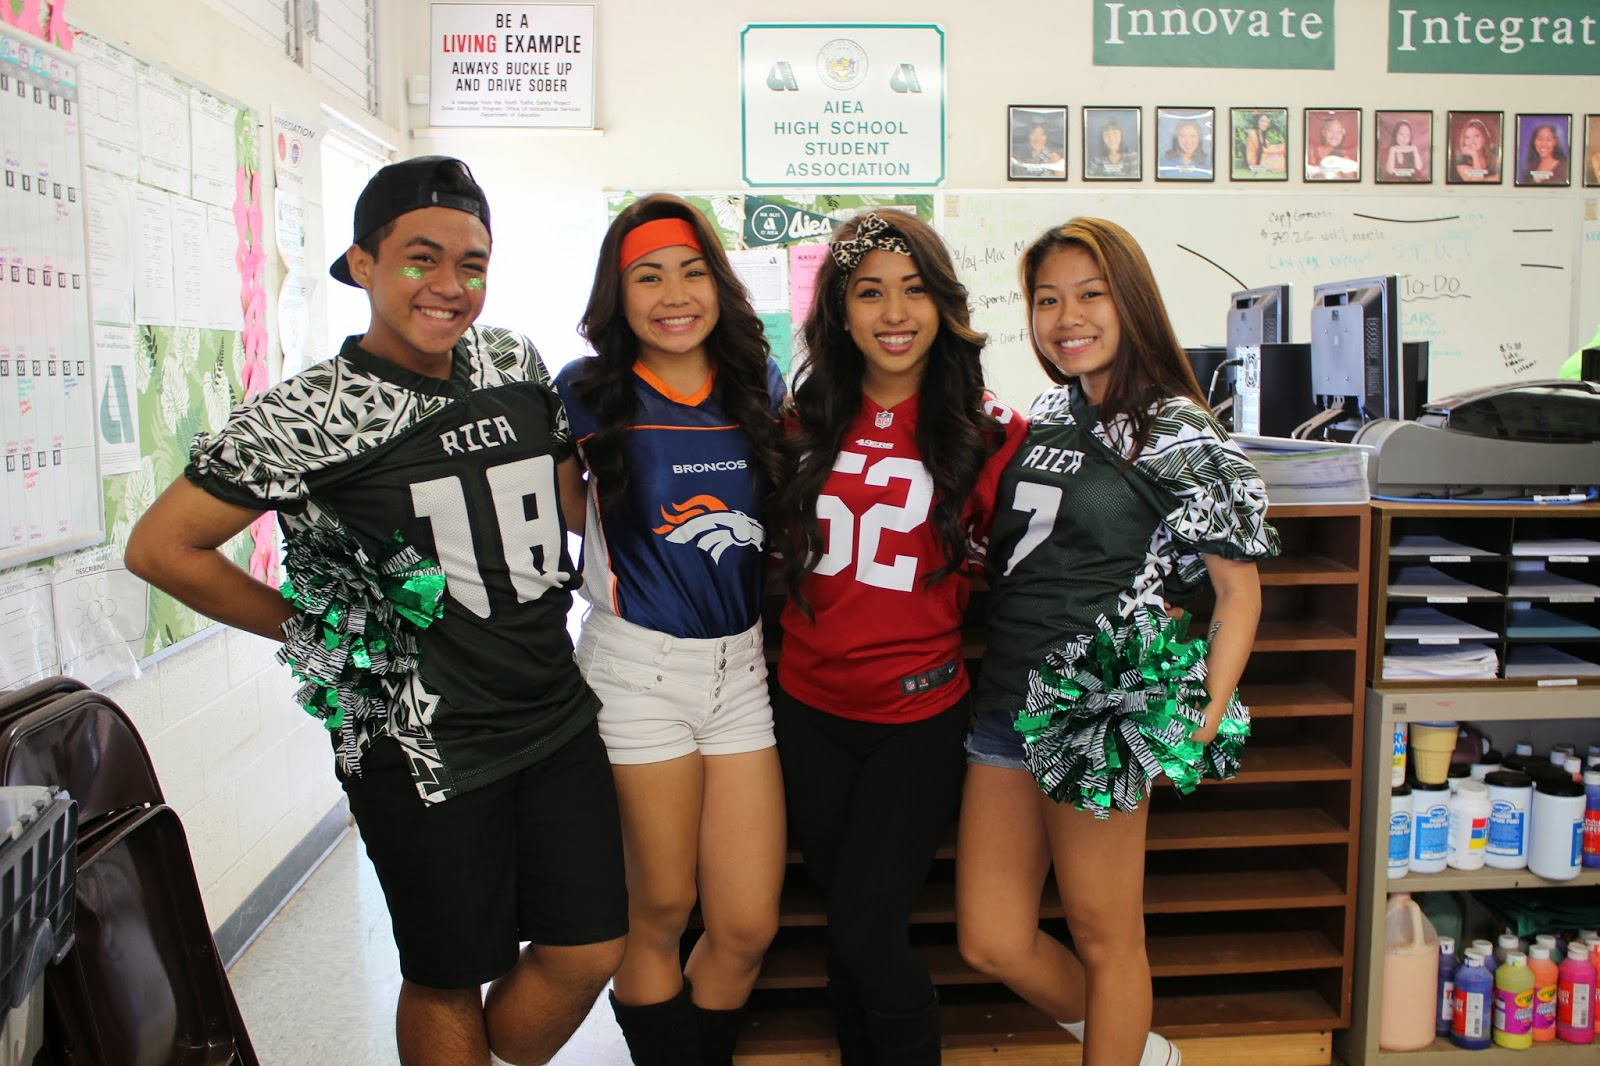 Thursday February 27 2014 Aiea High School